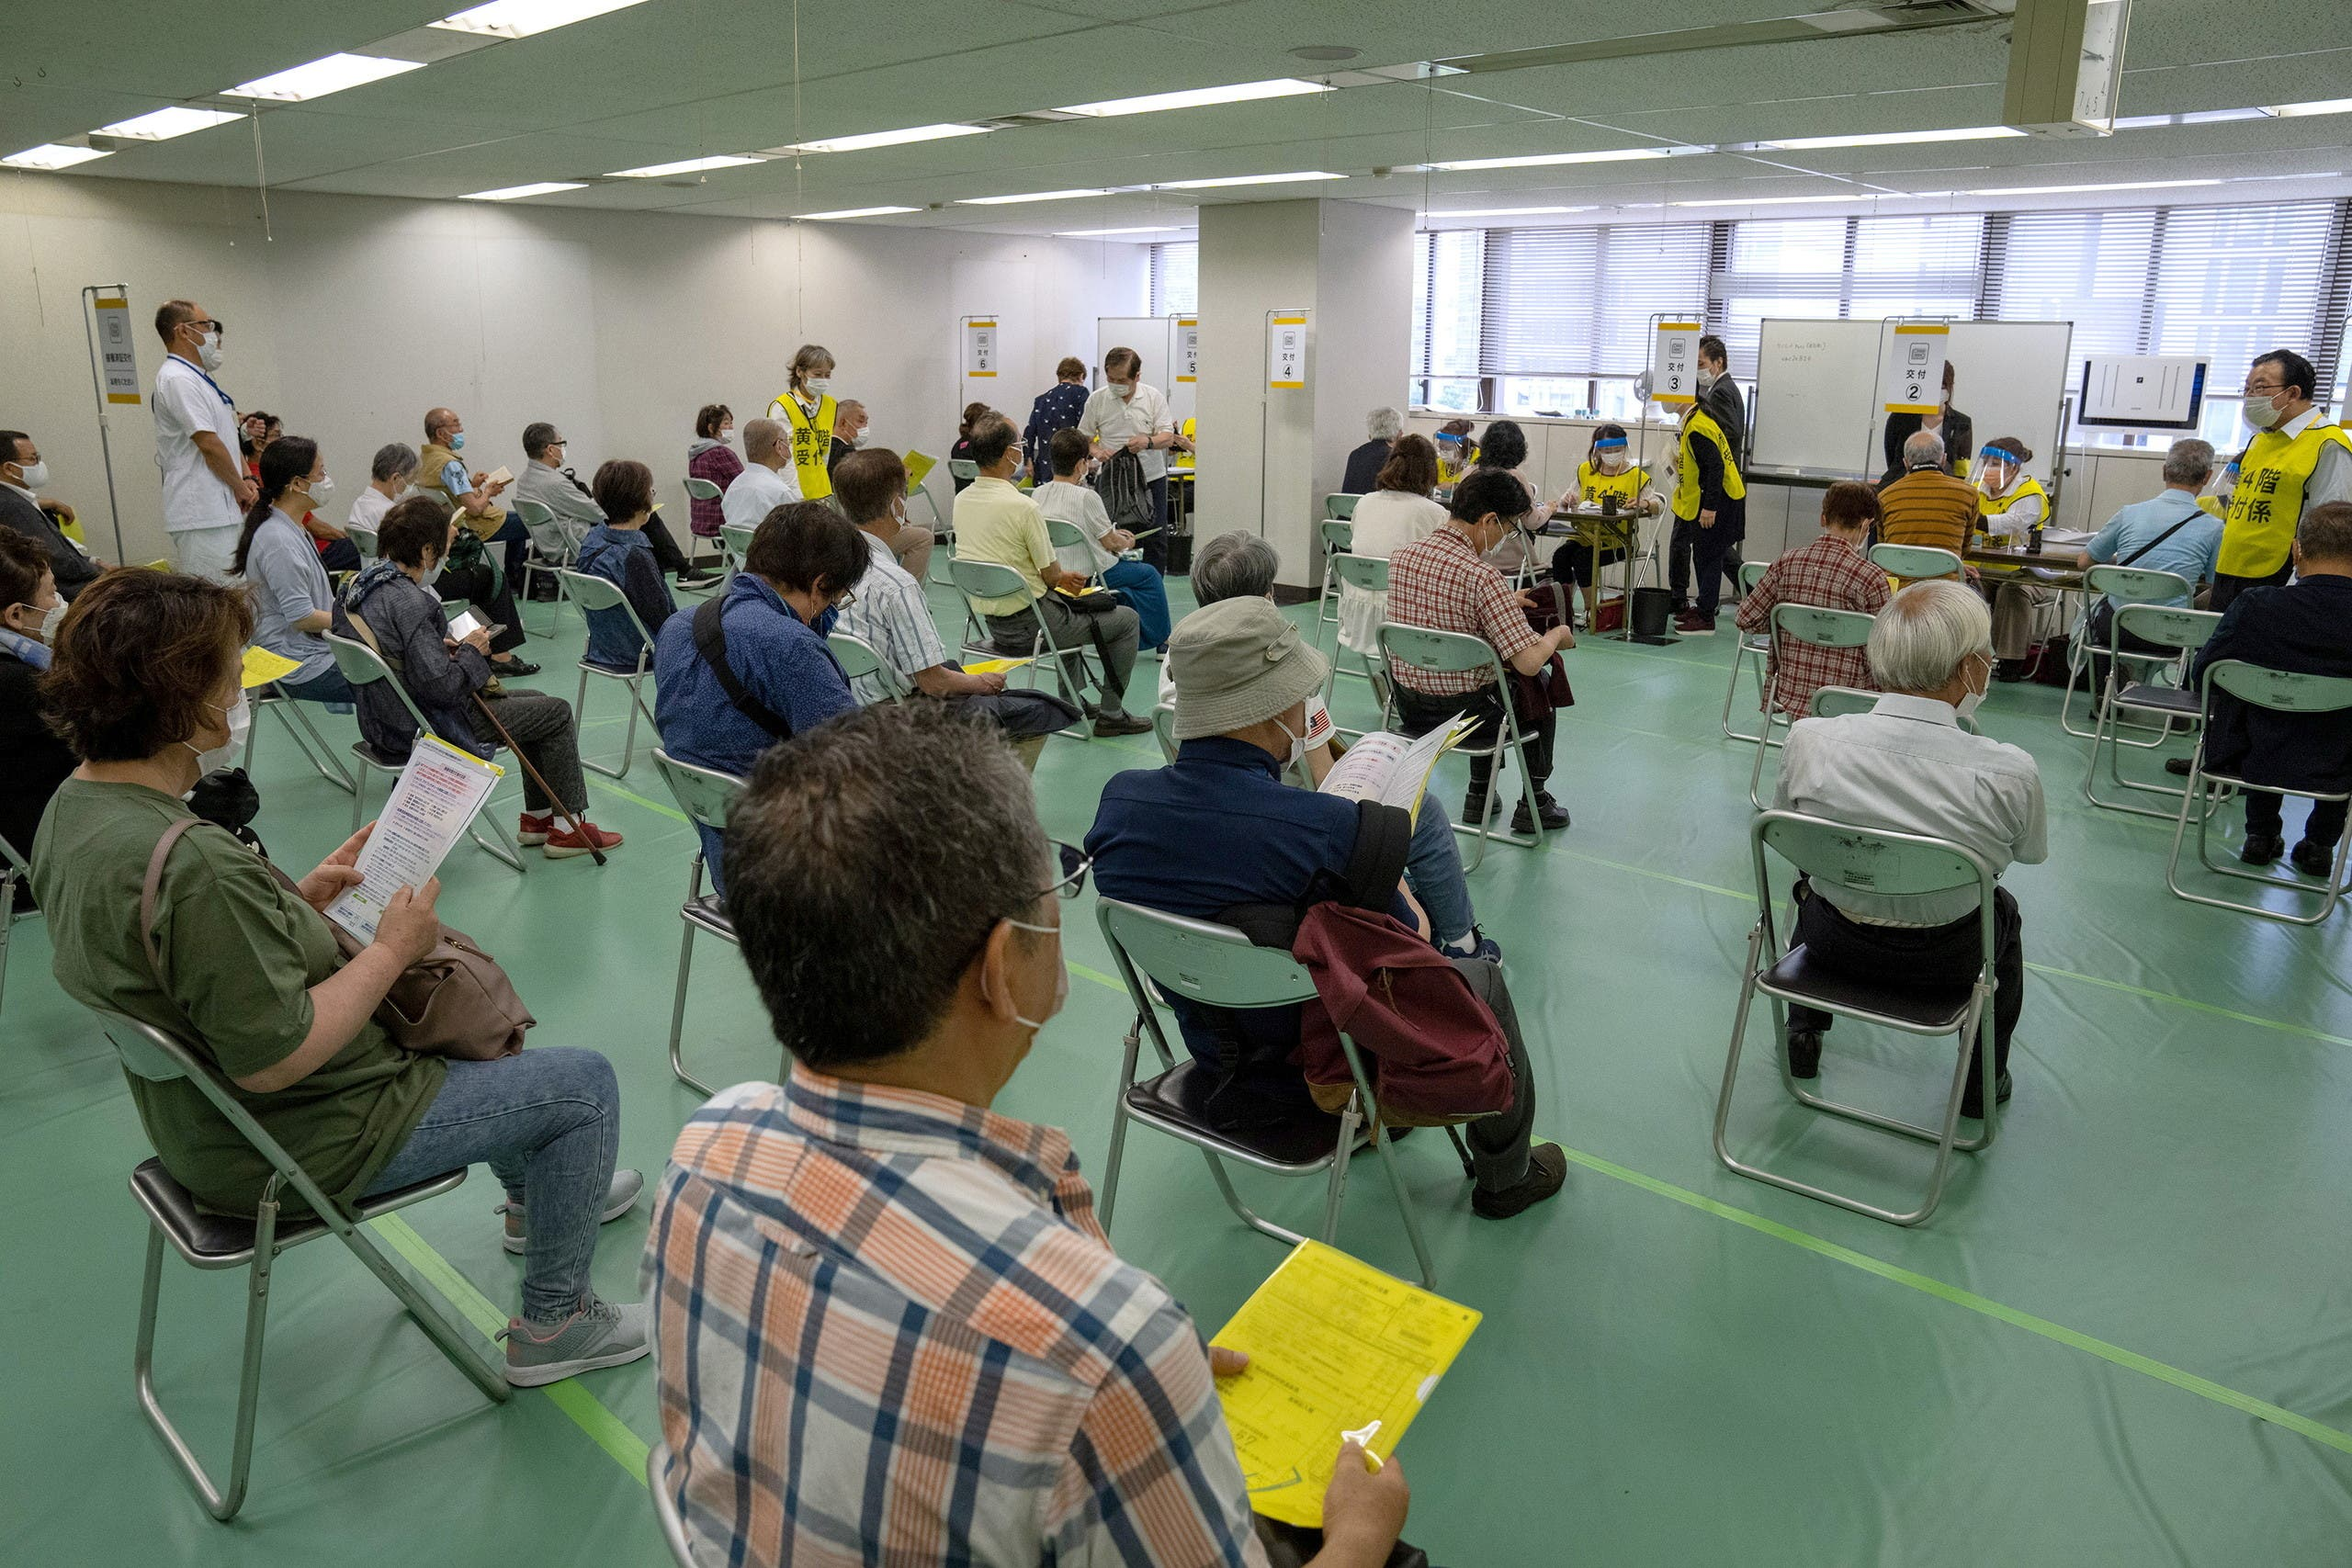 People wait to be processed after arriving to receive the Moderna coronavirus disease (COVID-19) vaccine at the newly-opened mass vaccination center in Tokyo, Japan, May 24, 2021. (Reuters)